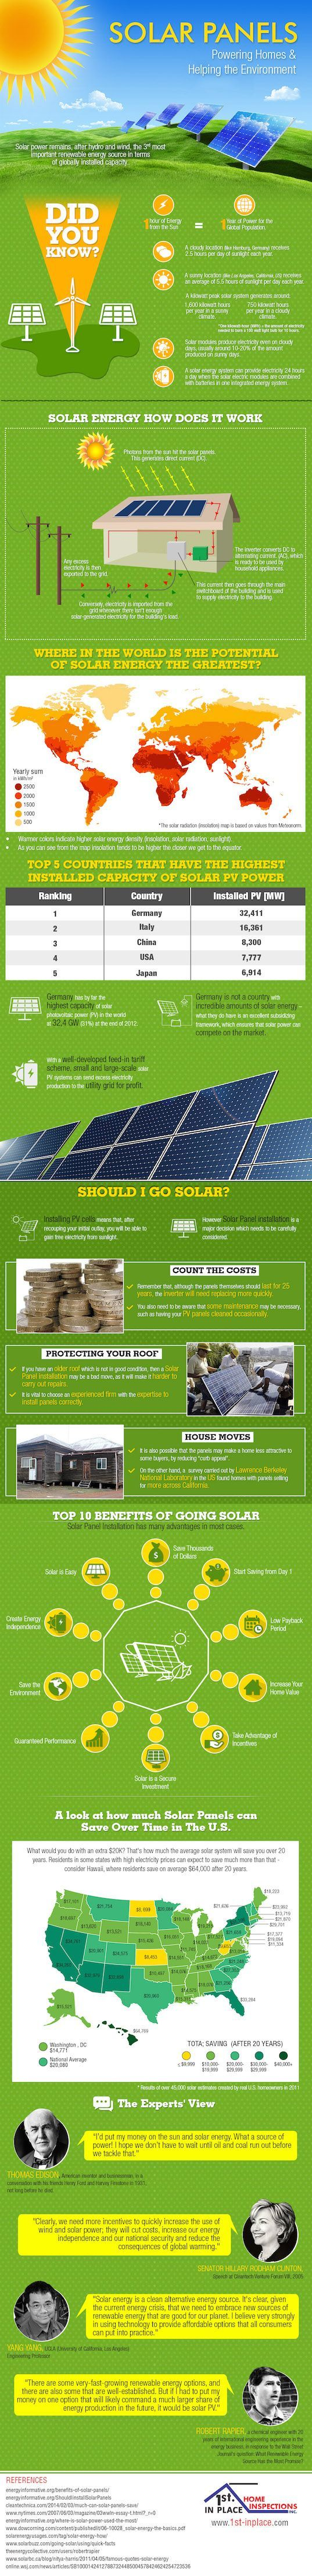 INFOGRAPHIC: Learn how solar panels work and the benefits of going solar